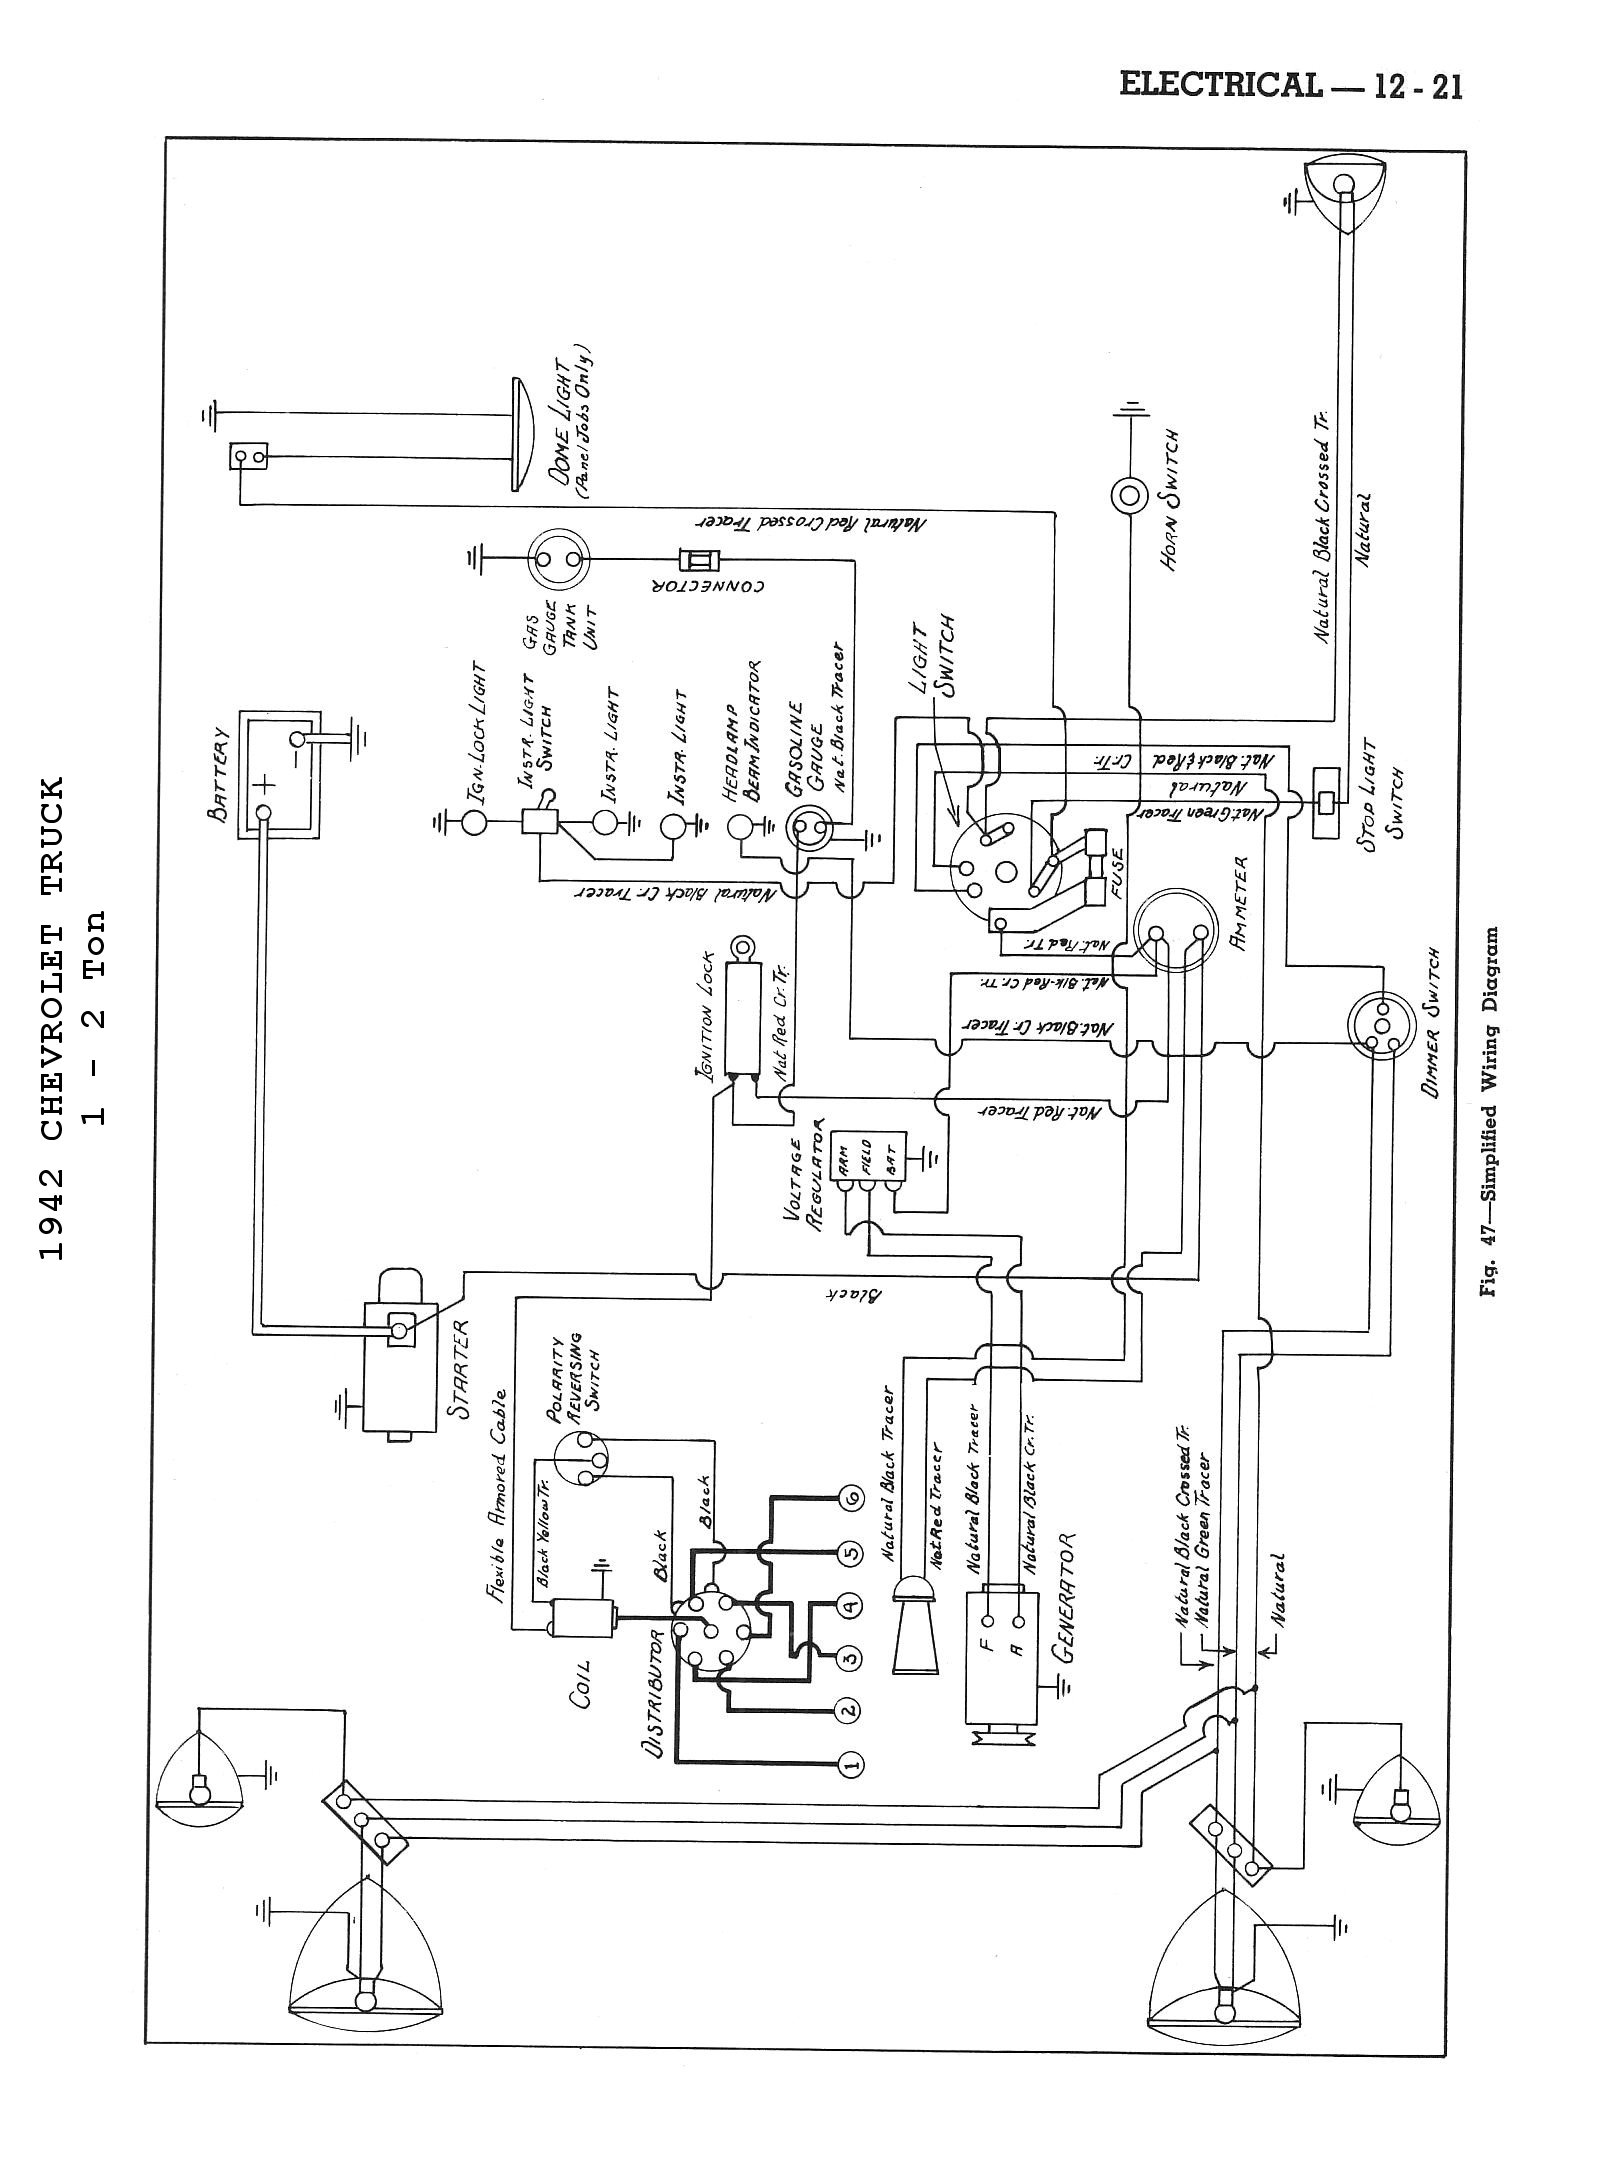 42cm4x2t1221 chevy wiring diagrams simple chevy tbi wiring harness diagram at mifinder.co